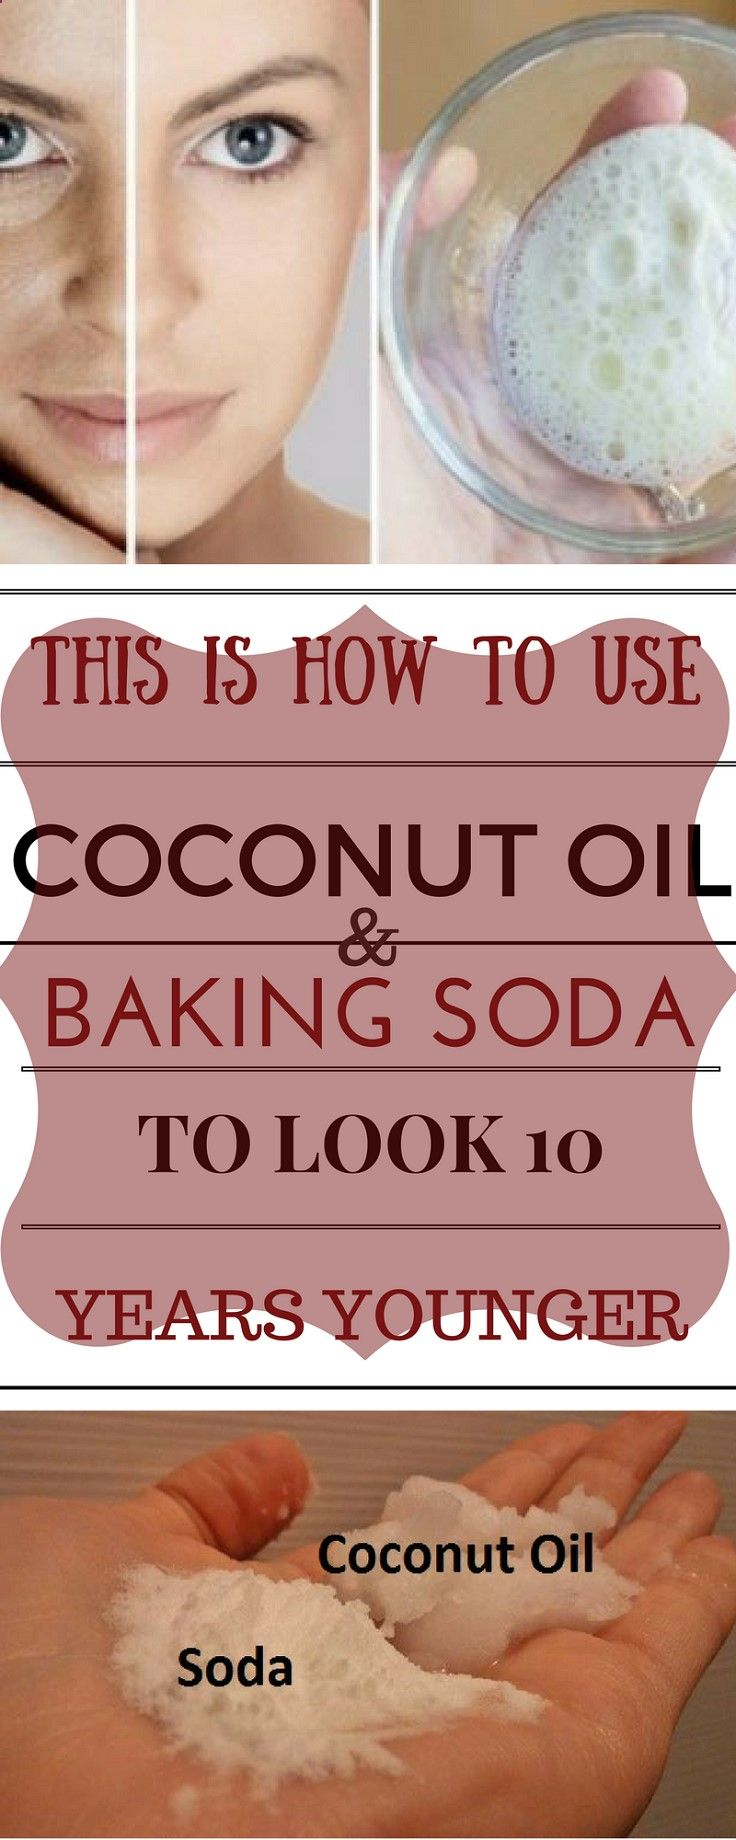 Coconut oil uses how to use coconut oil and baking soda